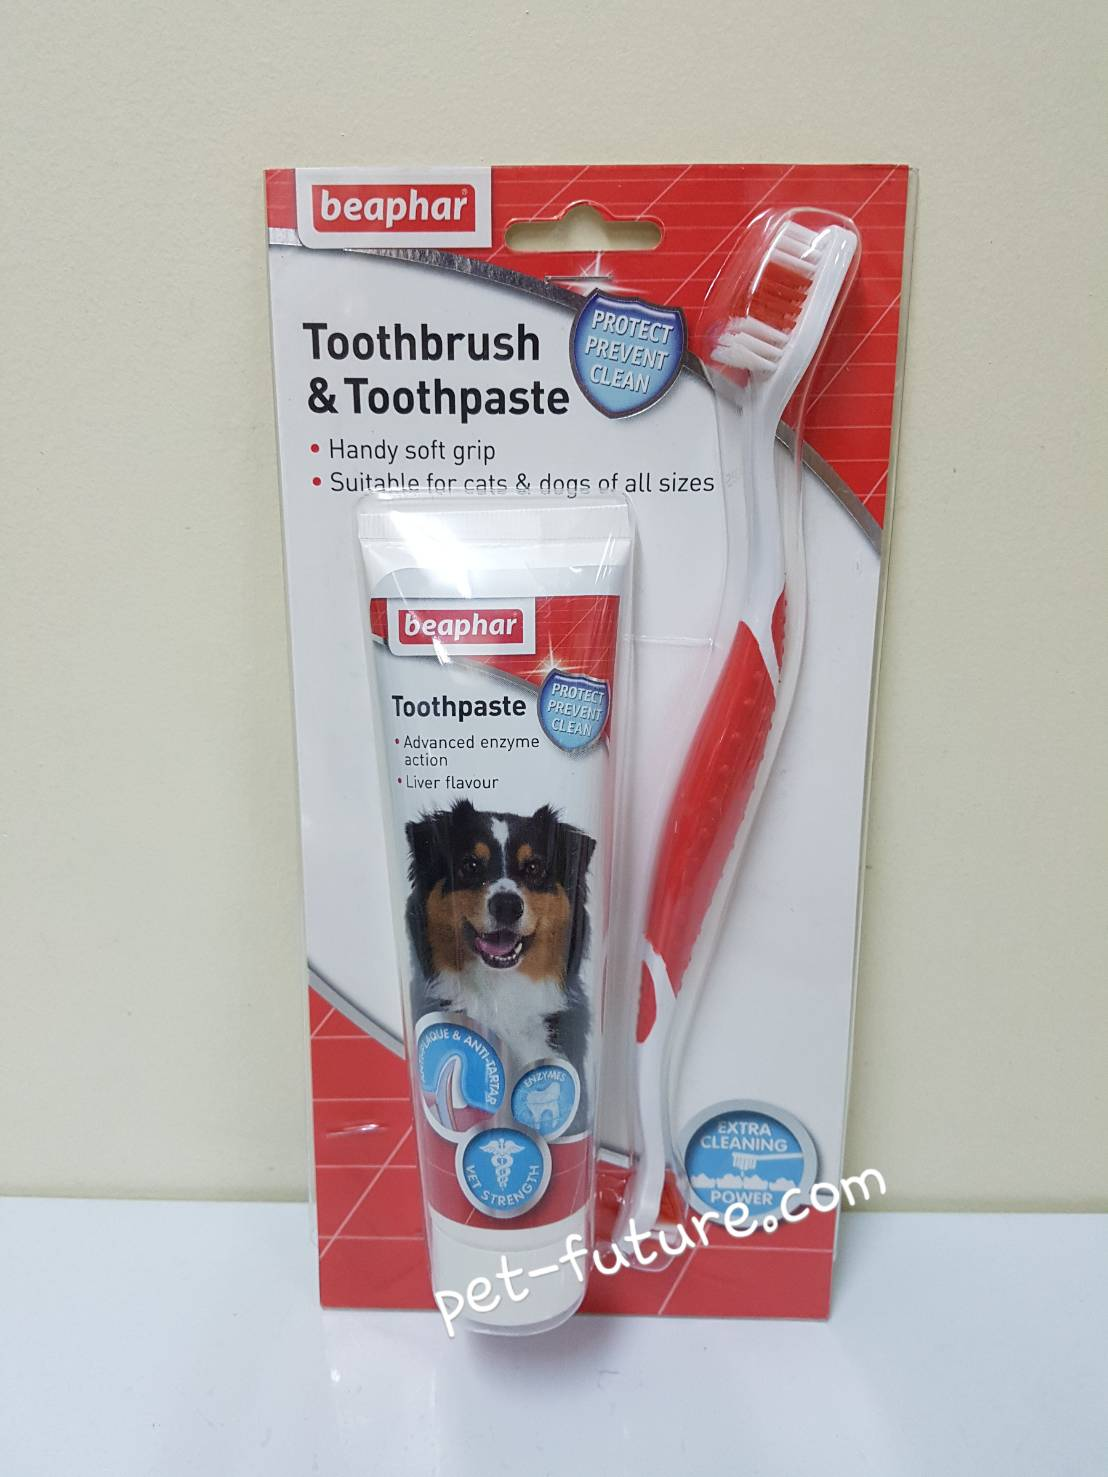 Beaphar Toothbrush & Toothpaste รสตับ Exp.10/19